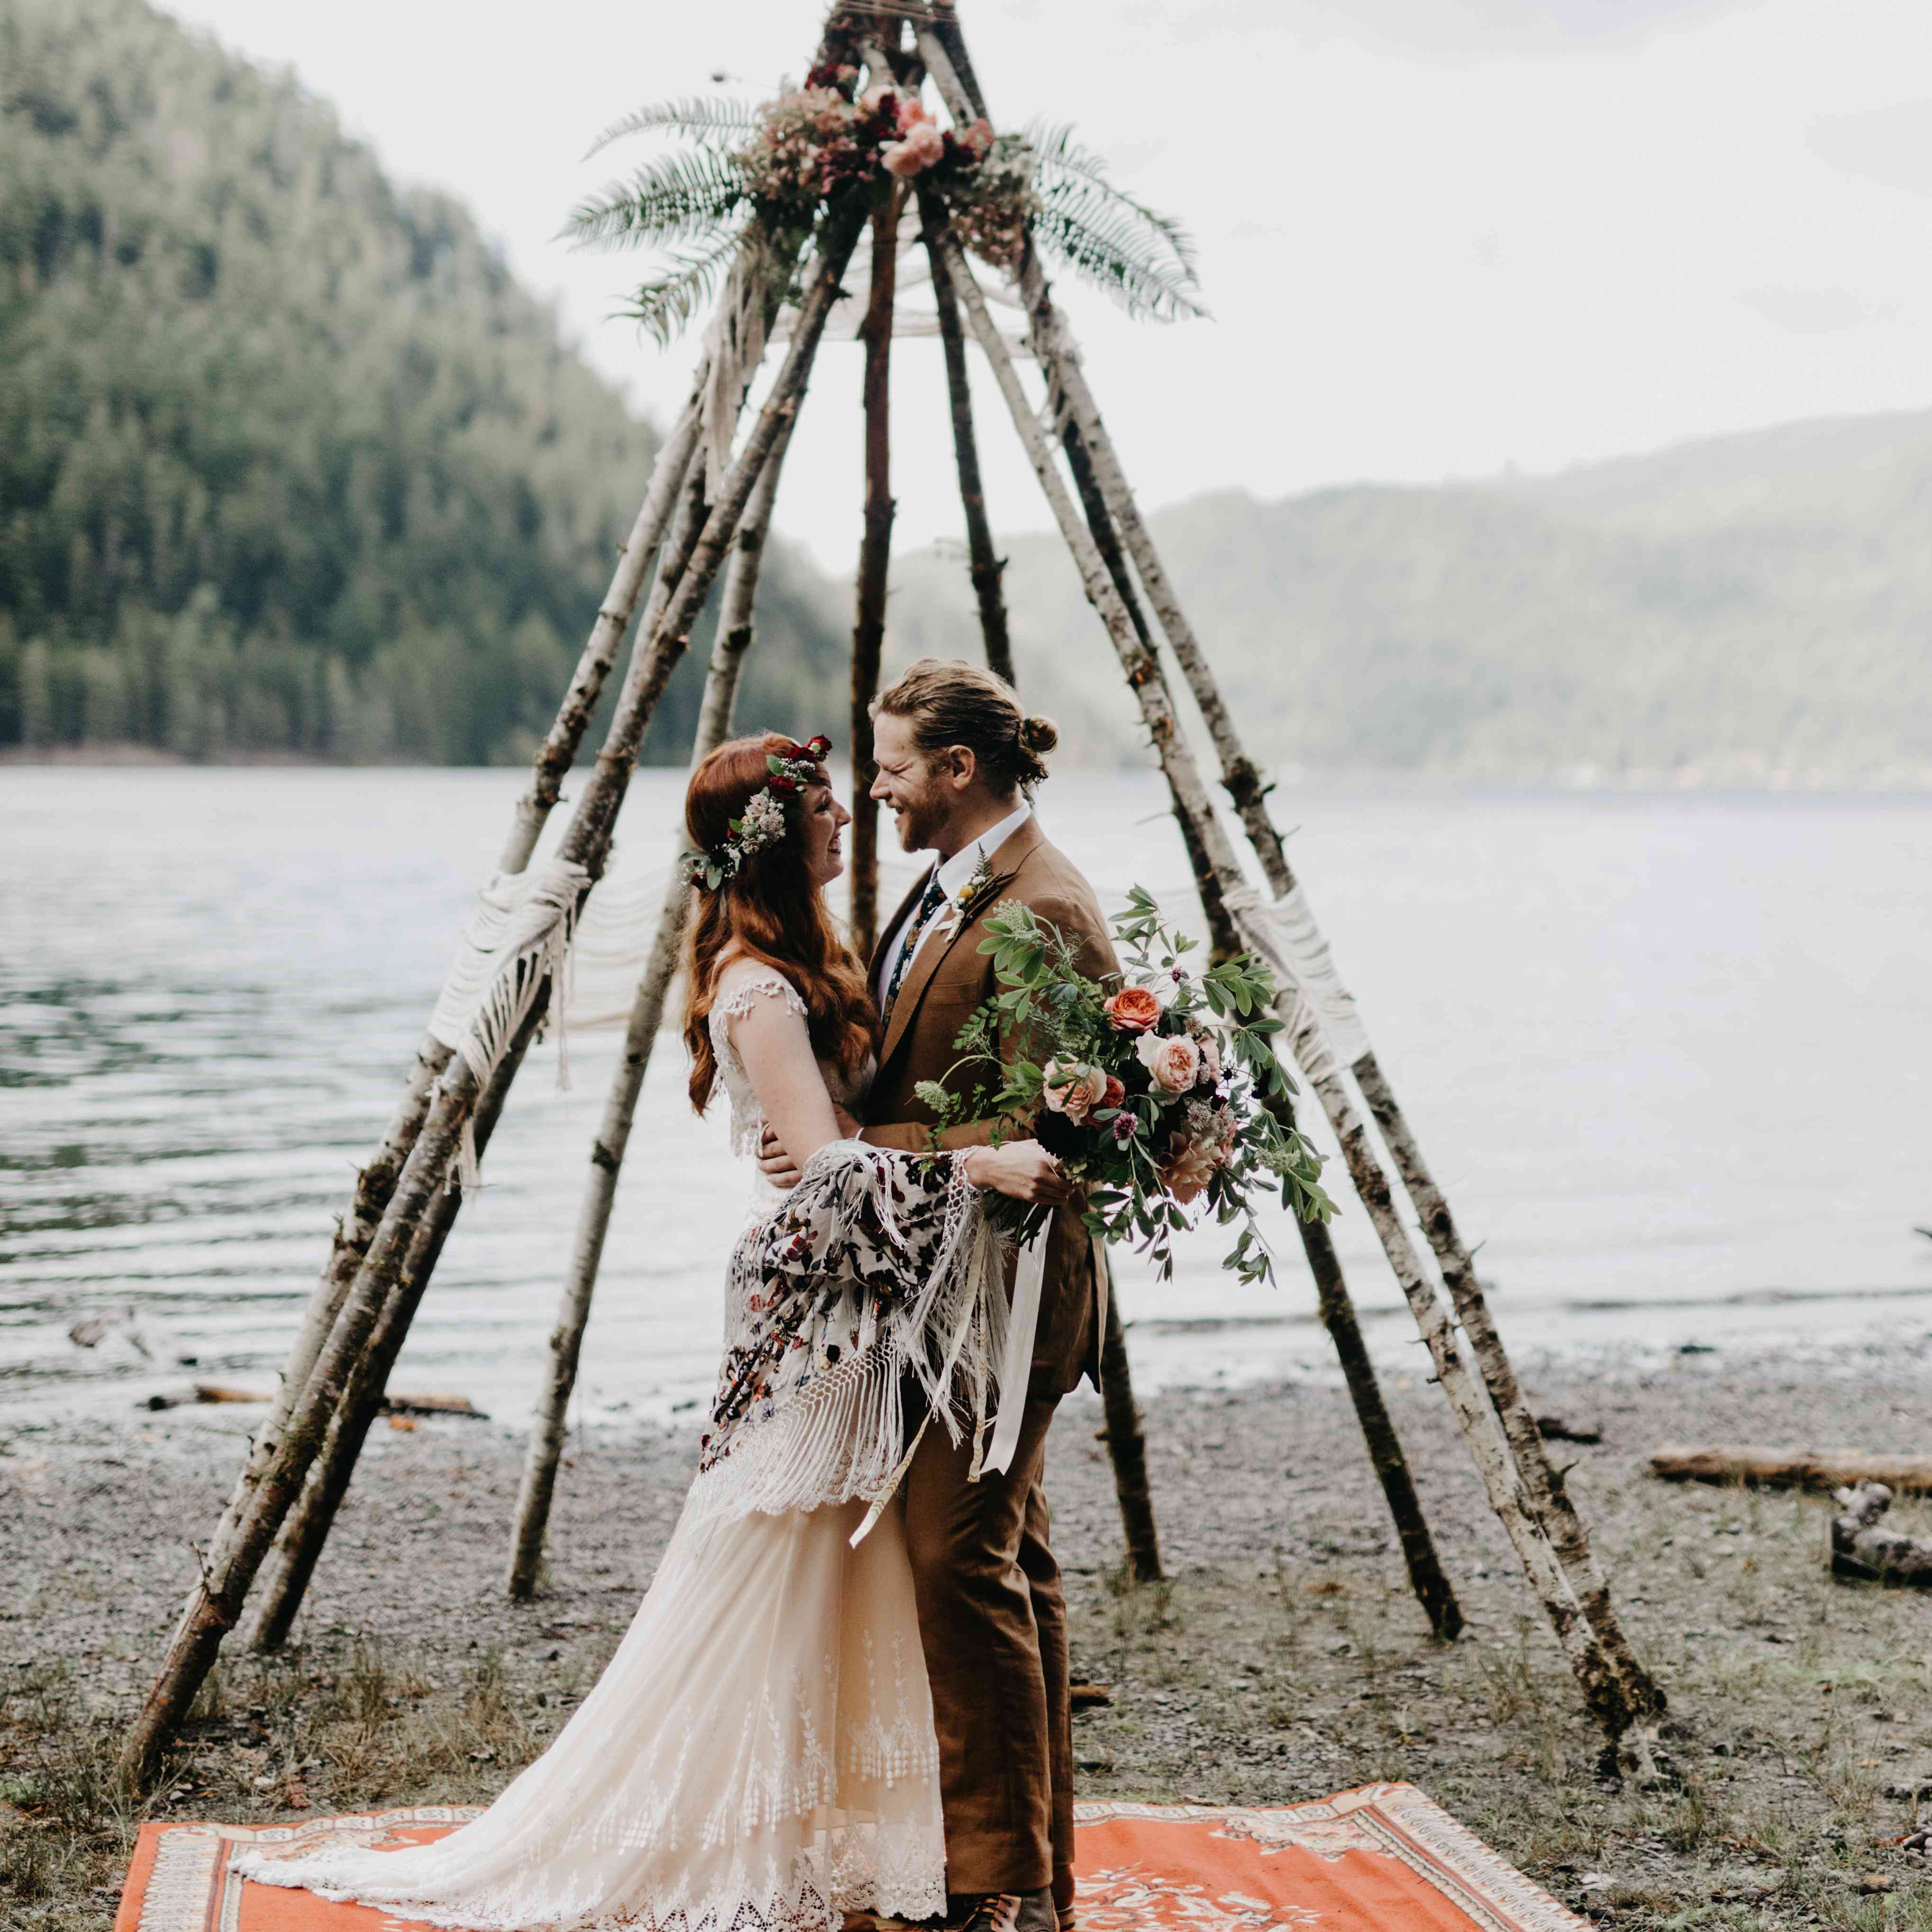 Rustic Wedding Altar Ideas: 60 Amazing Wedding Altar Ideas & Structures For Your Ceremony